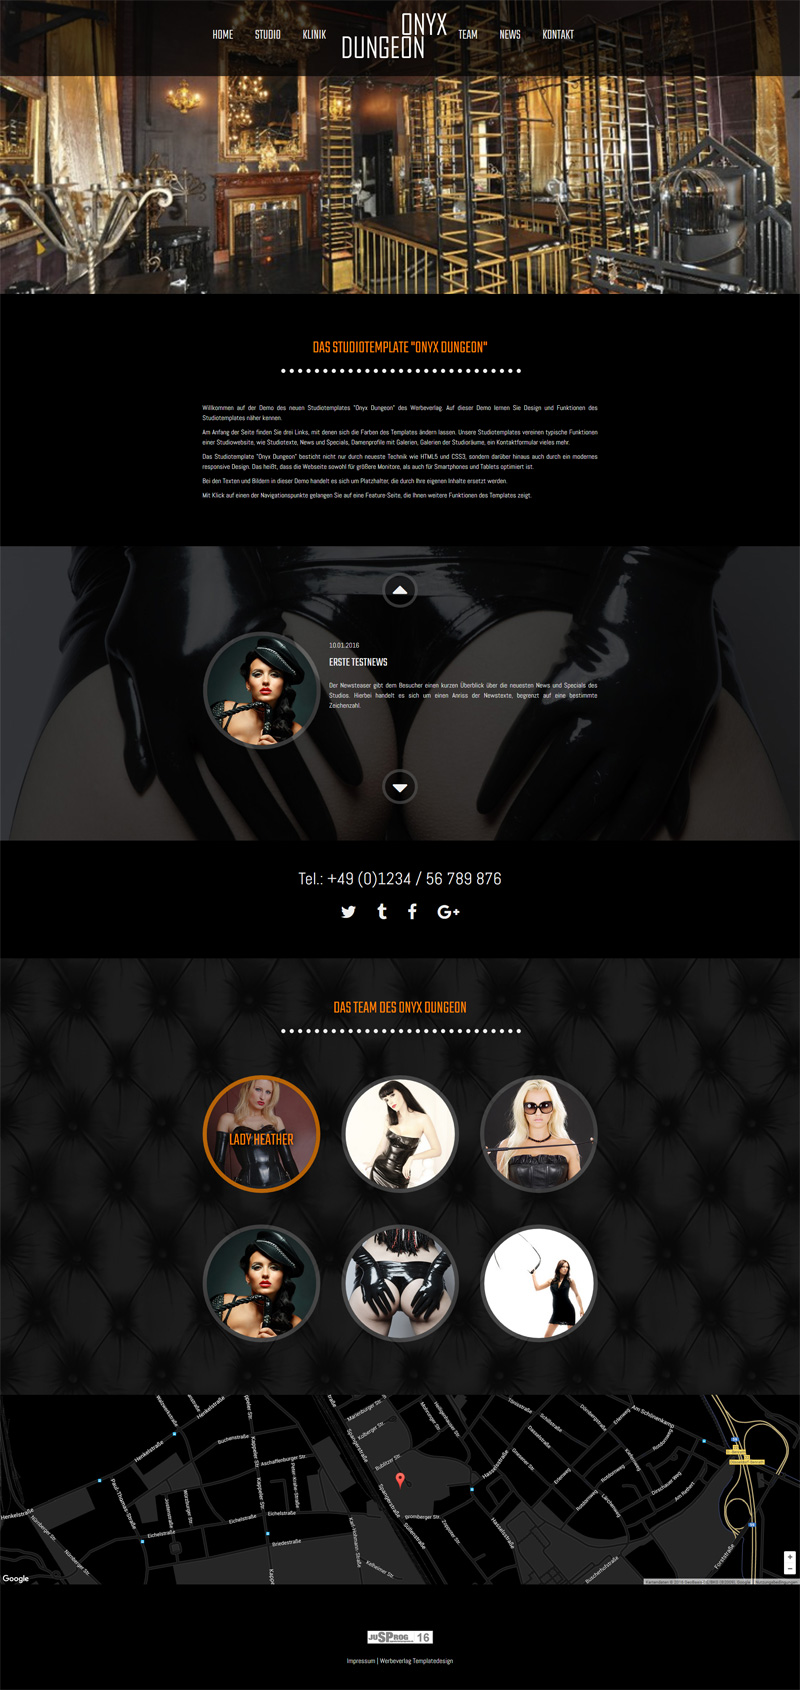 Funktionen des Studio-Templates 'Onyx'